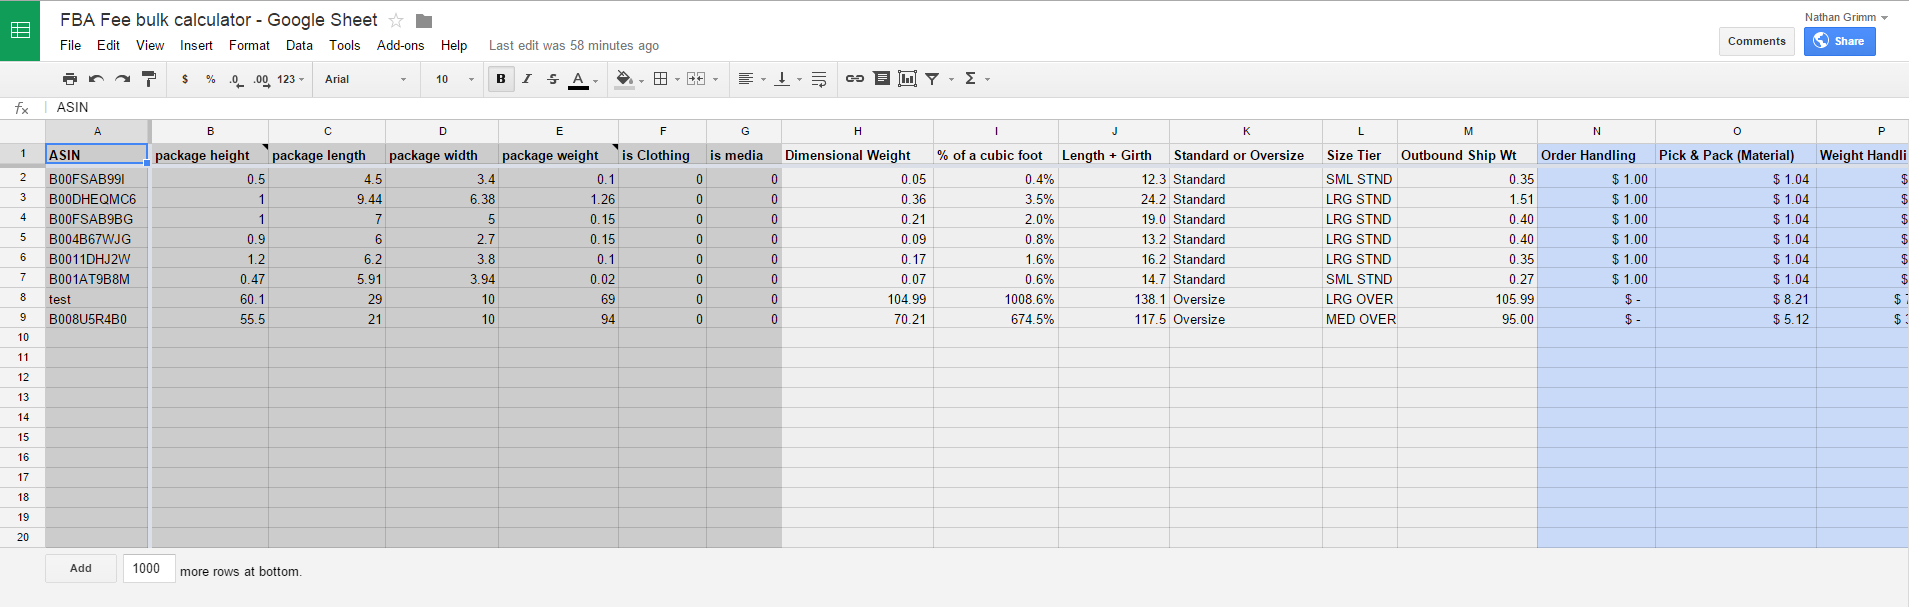 Amazon Fba Excel Spreadsheet In Fba Fee Bulk Calculator In Excel For Us And Uk